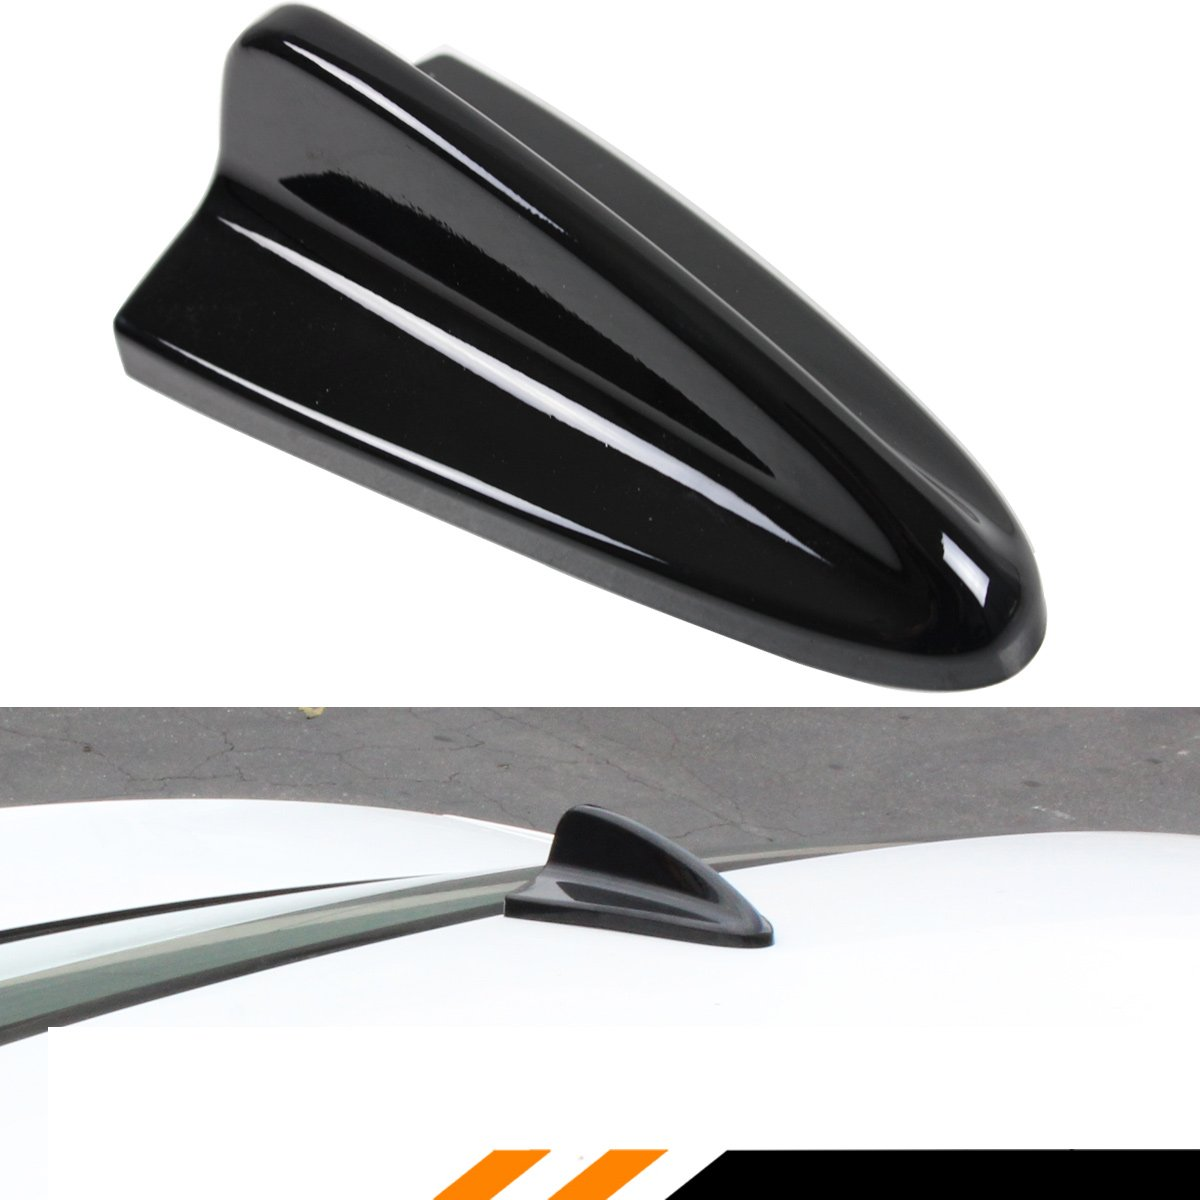 Cuztom Tuning PAINTED GLOSSY BLACK STICK-ON DECORATIVE DUMMY SHARK FIN ROOF TOP ANTENNA